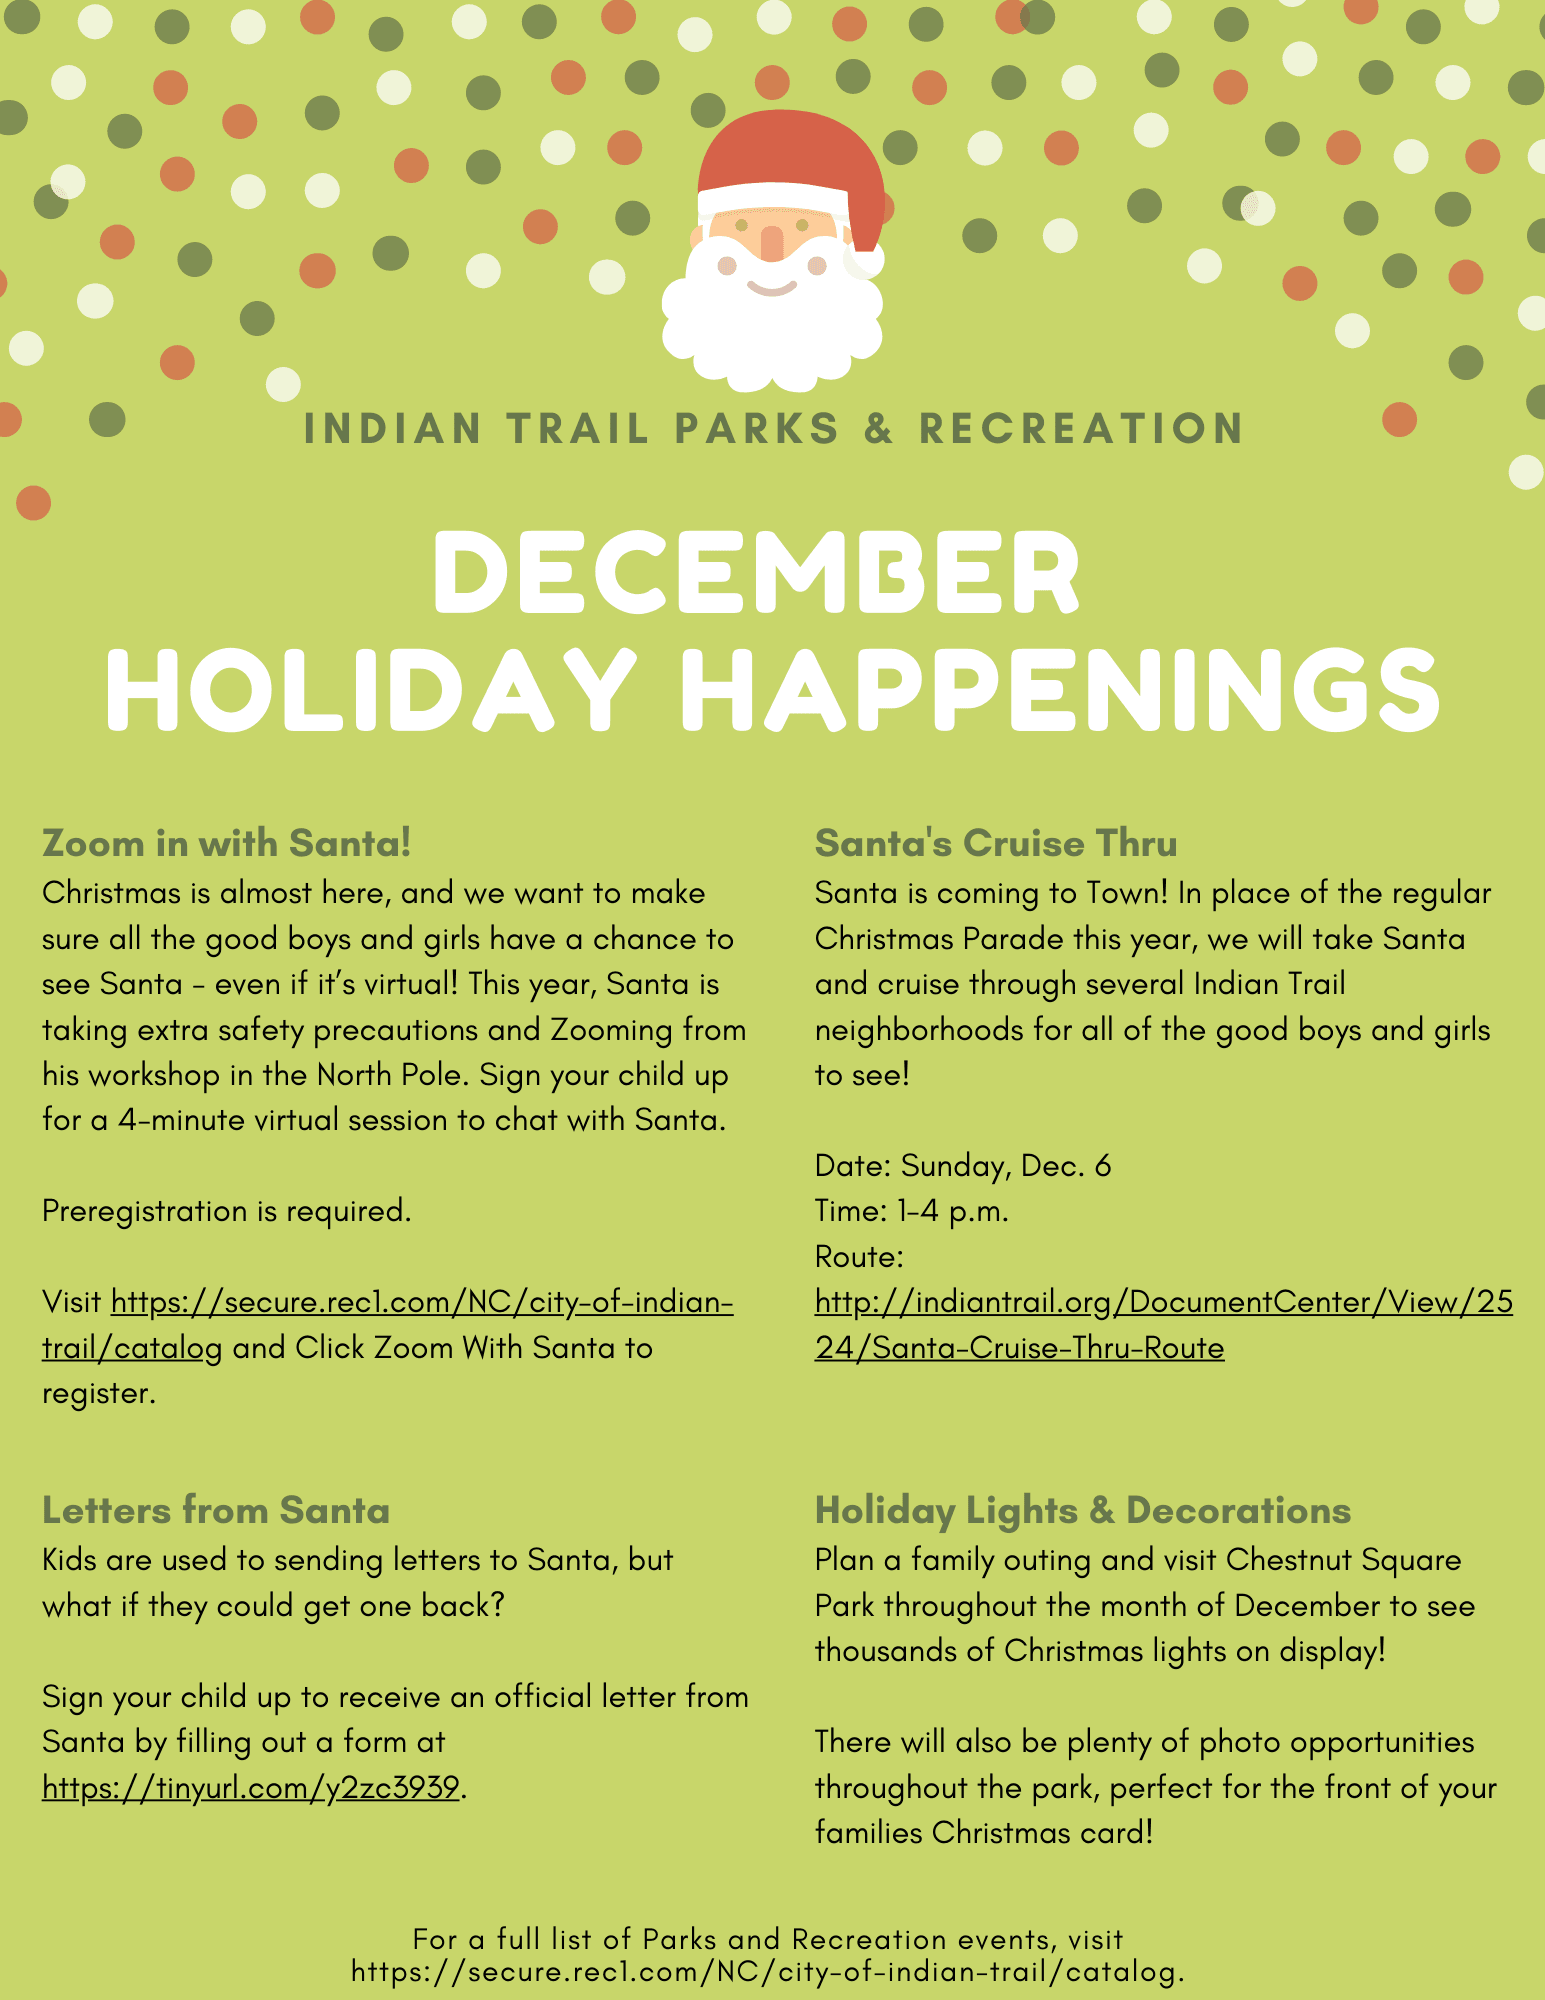 December Holiday Happenings list of events